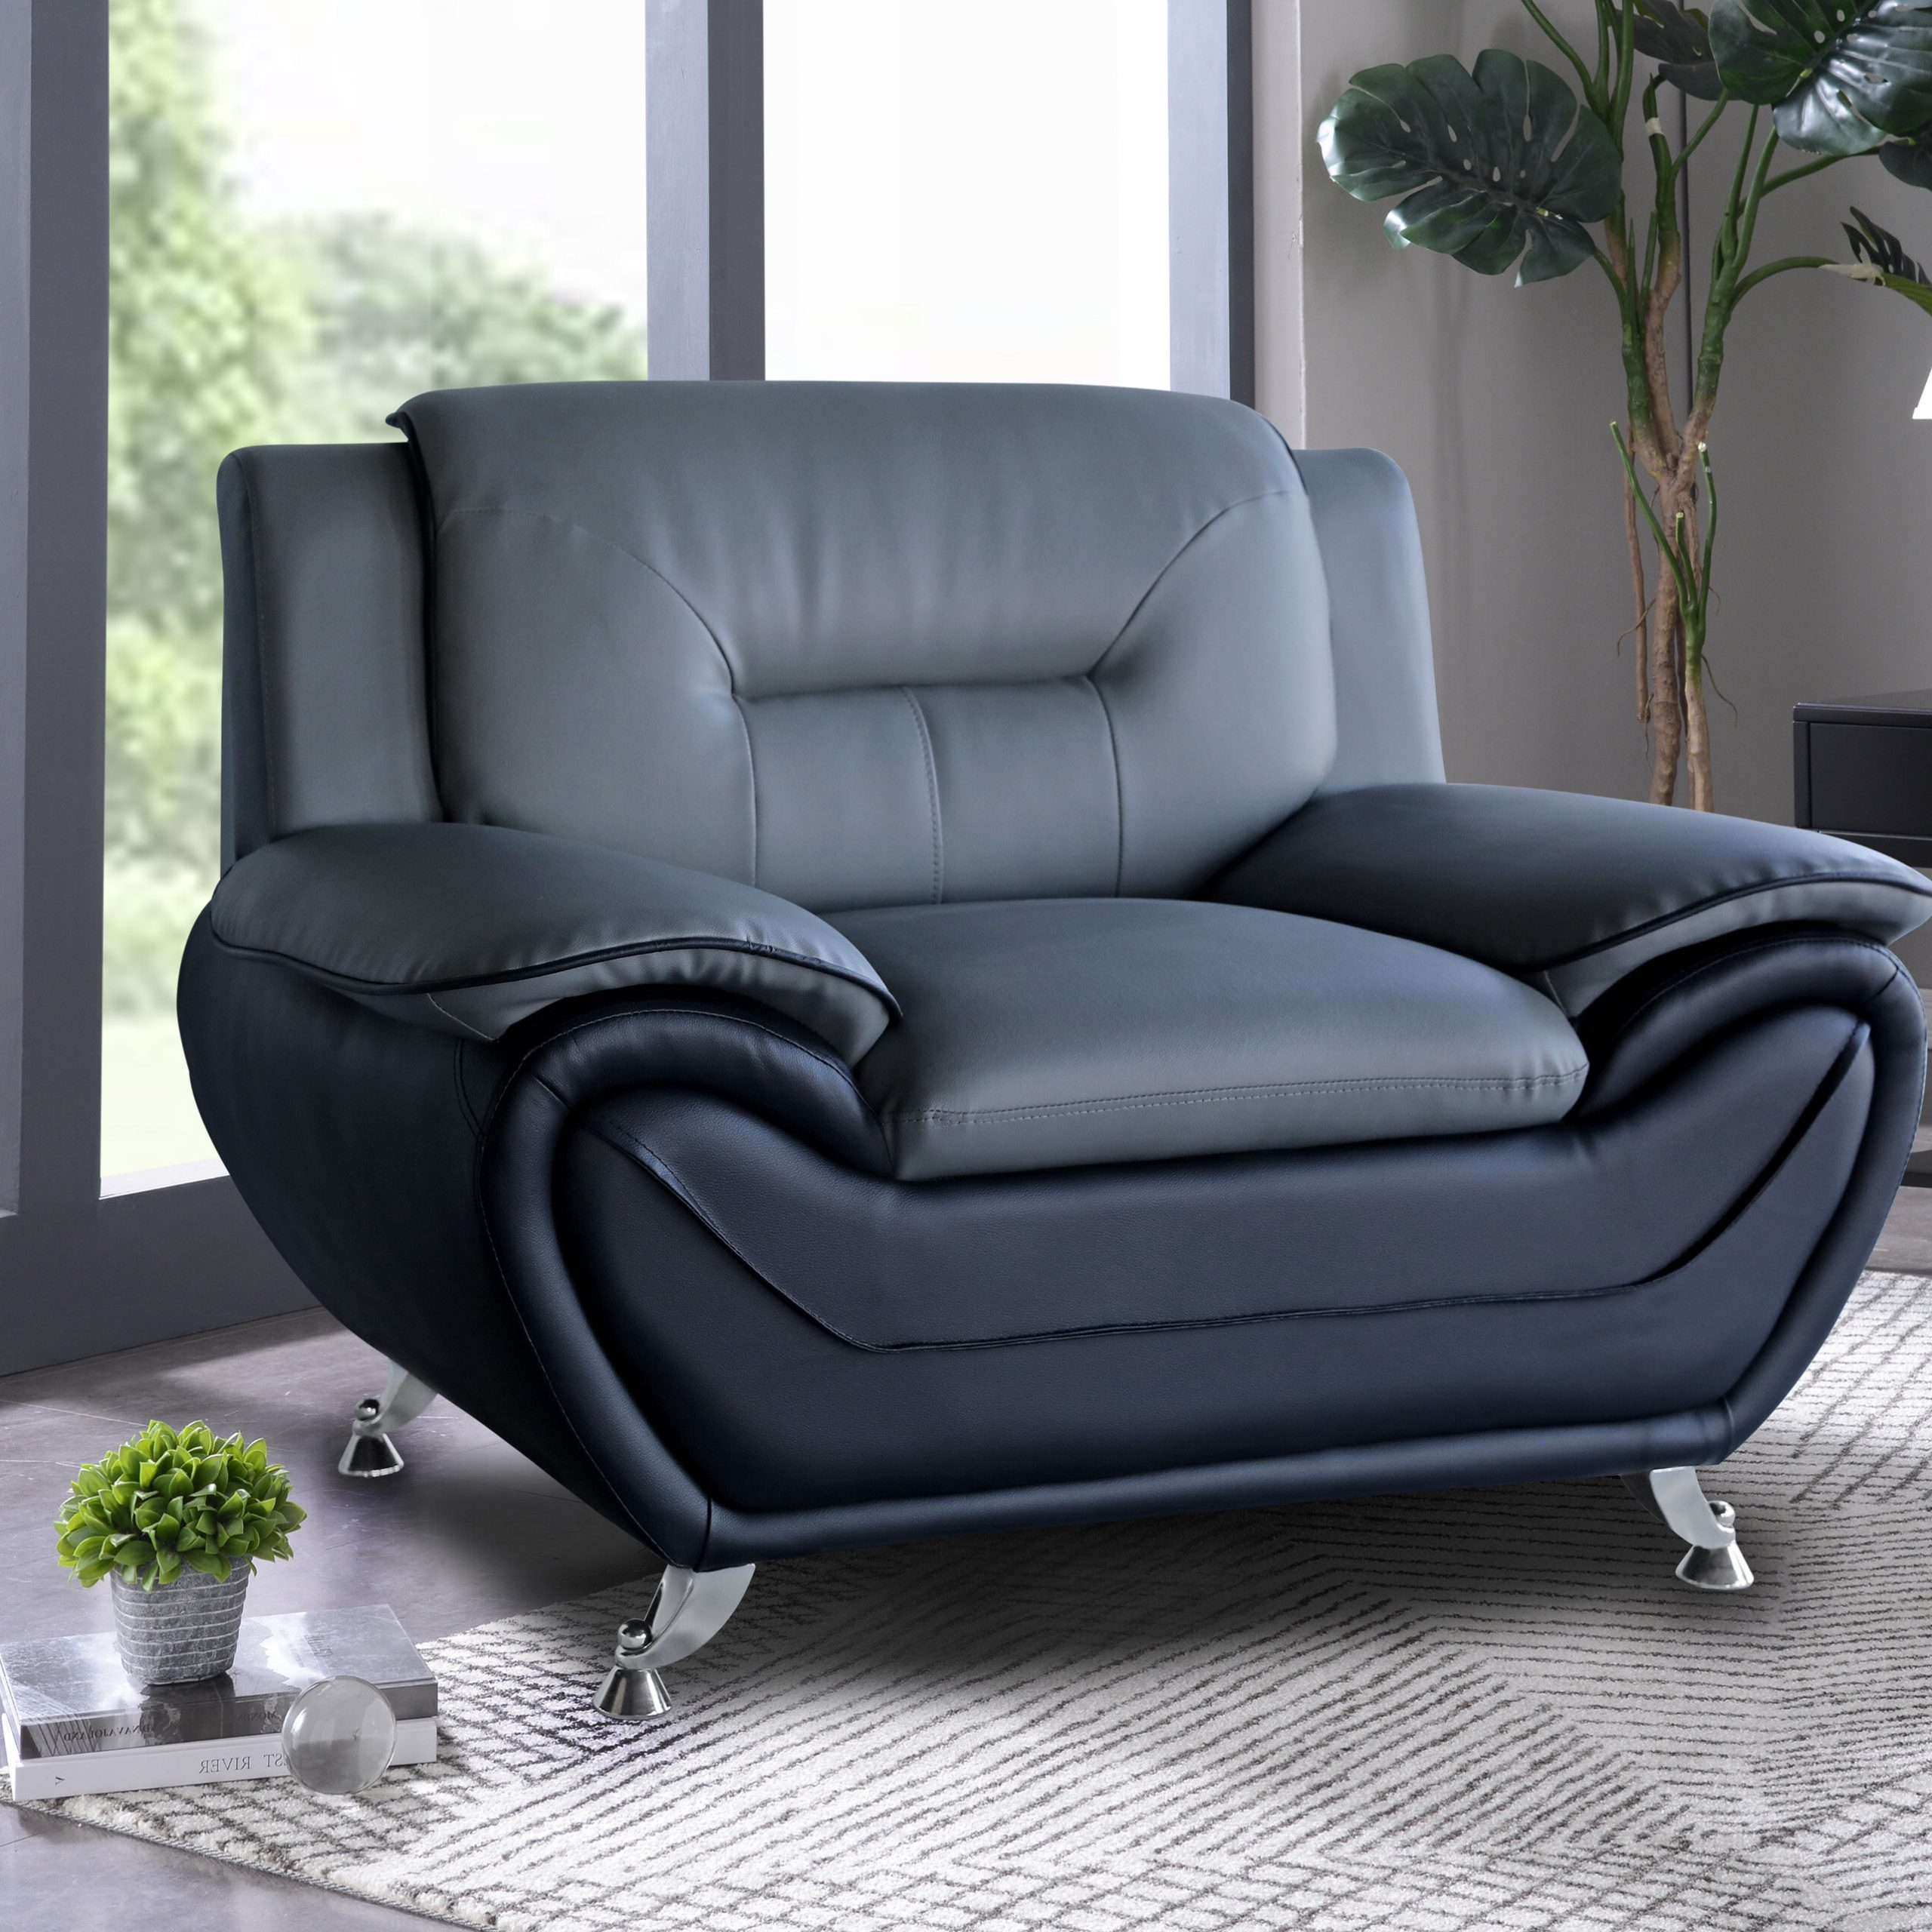 """Polston 45"""" W Tufted Faux Leather Armchair Throughout Most Recent Autenberg Armchairs (View 14 of 20)"""